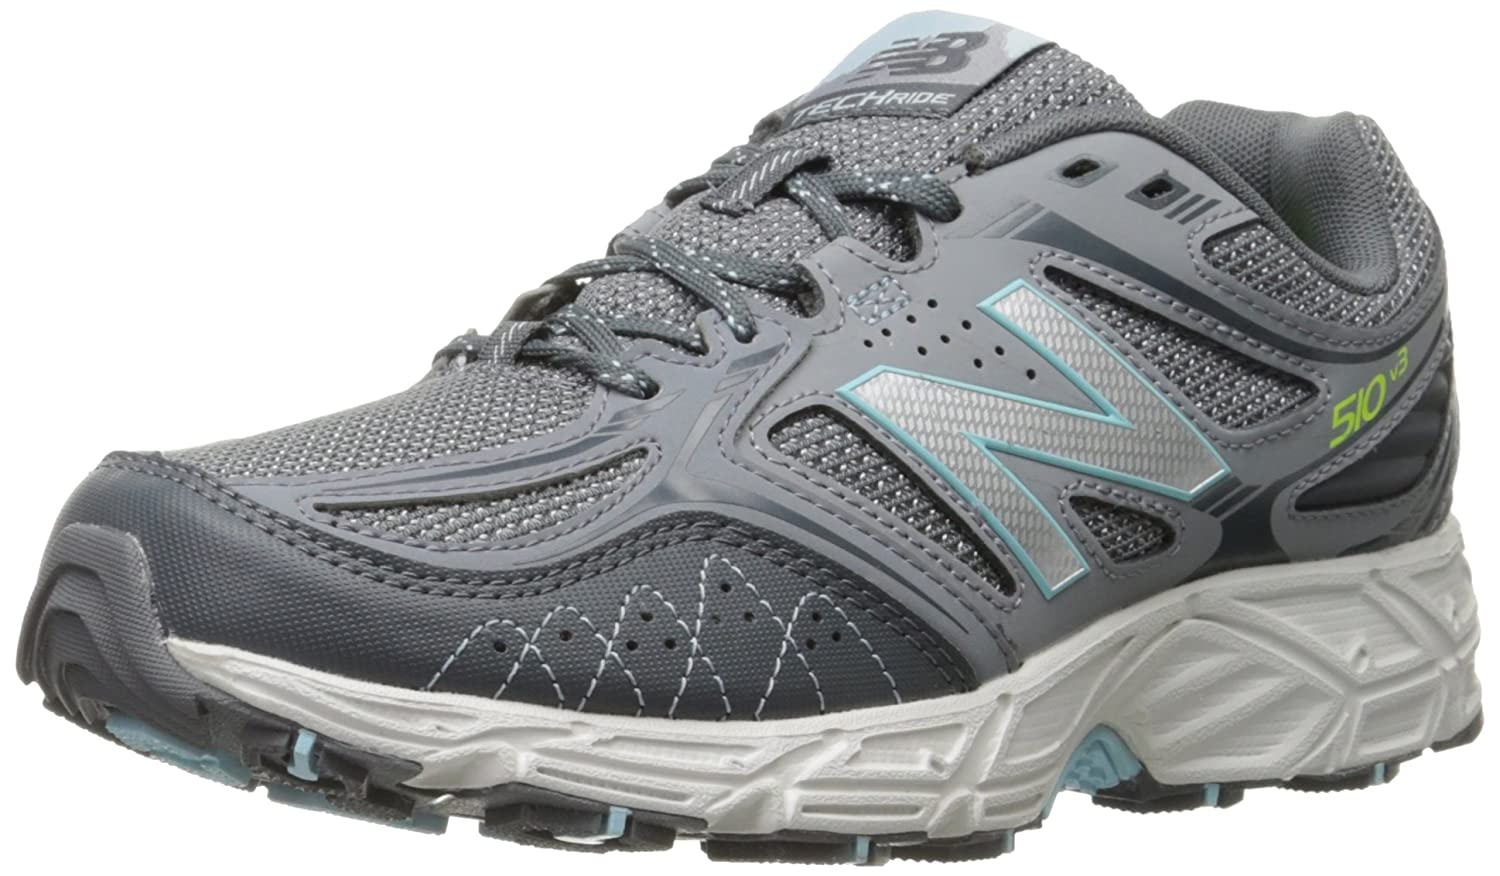 New Balance Women's WT510V3 Trail Running Shoe B0163GAA9K 6.5 D US|Grey/Freshwater